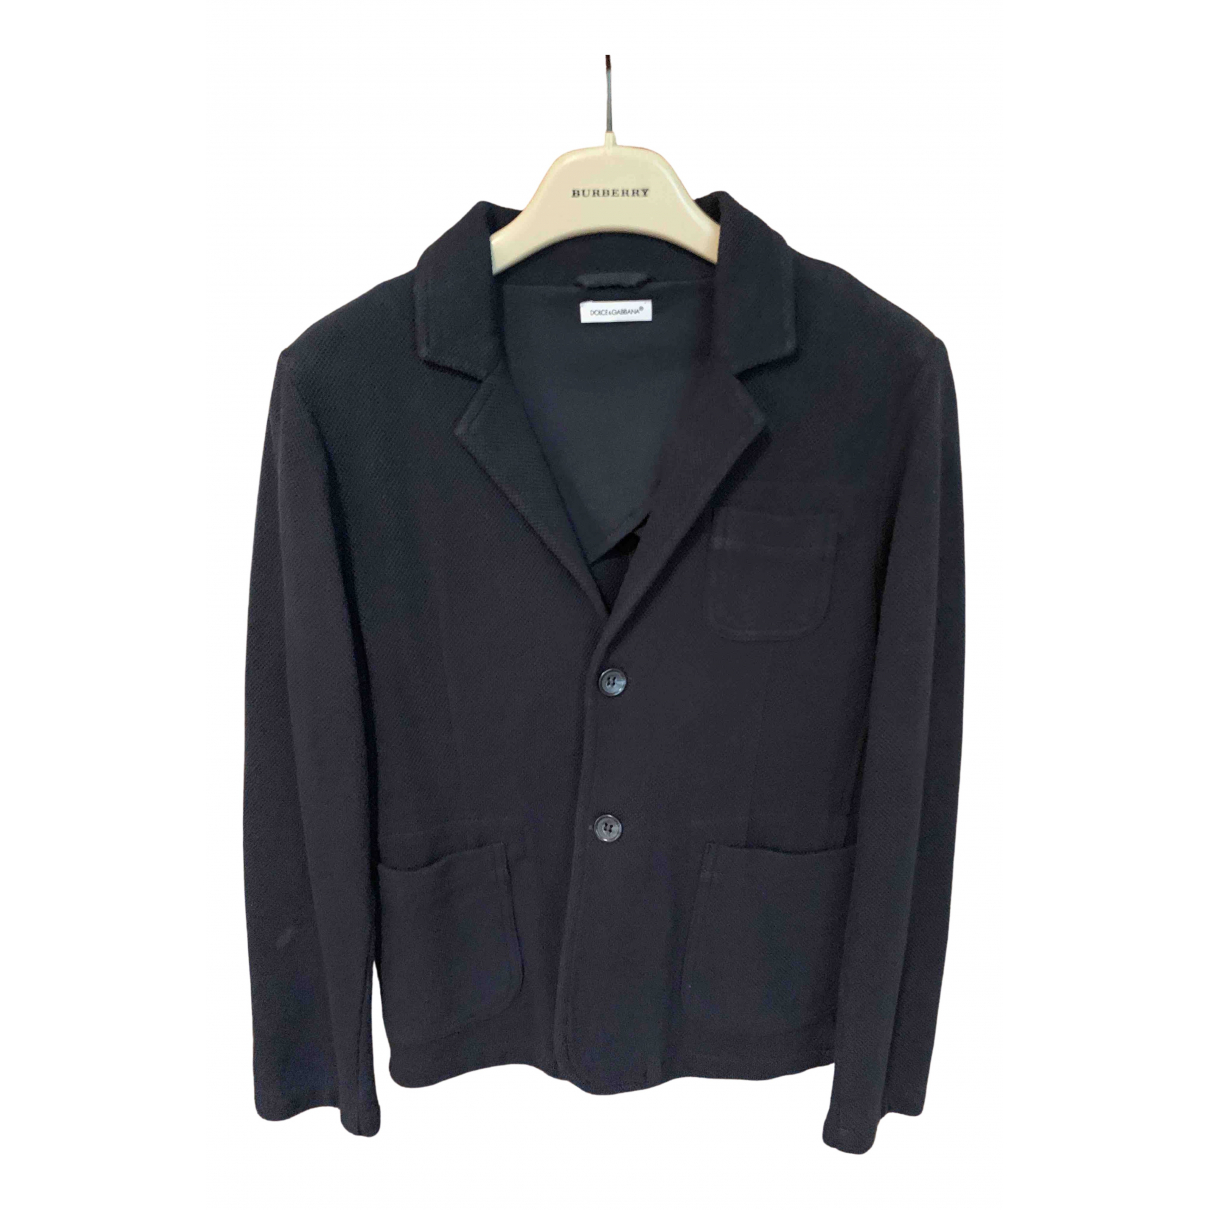 Dolce & Gabbana N Blue Cotton jacket & coat for Kids 8 years - up to 128cm FR